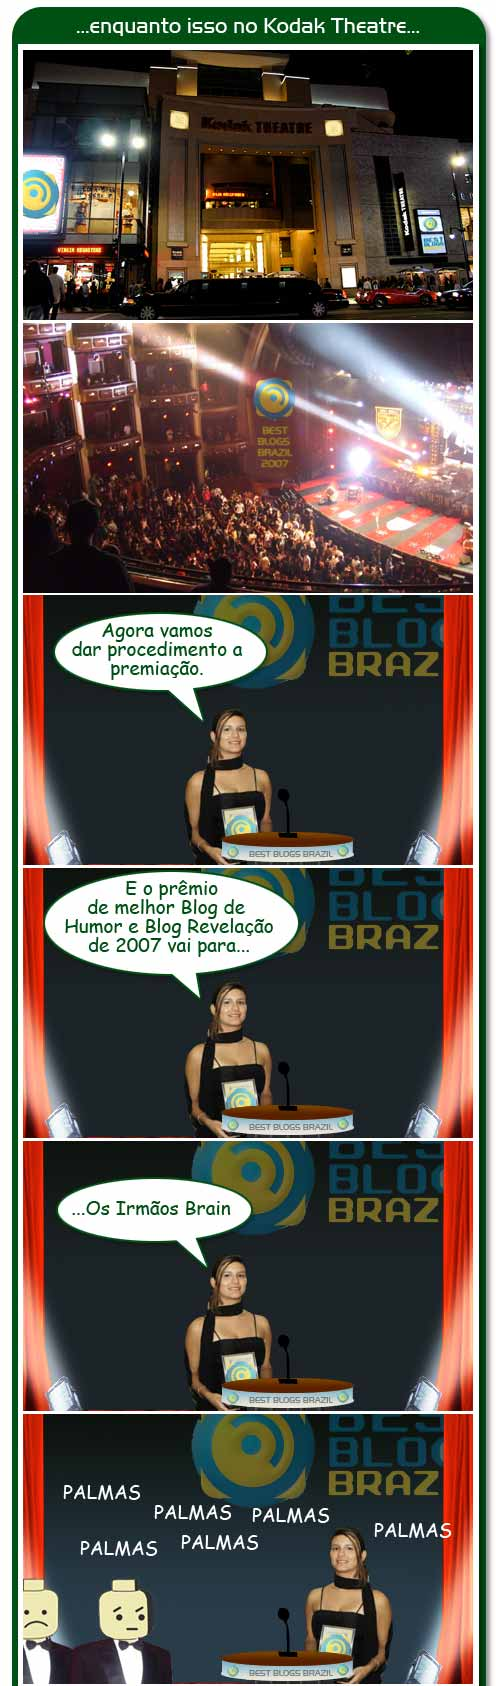 premiacao final 1 And the BBB goes to...